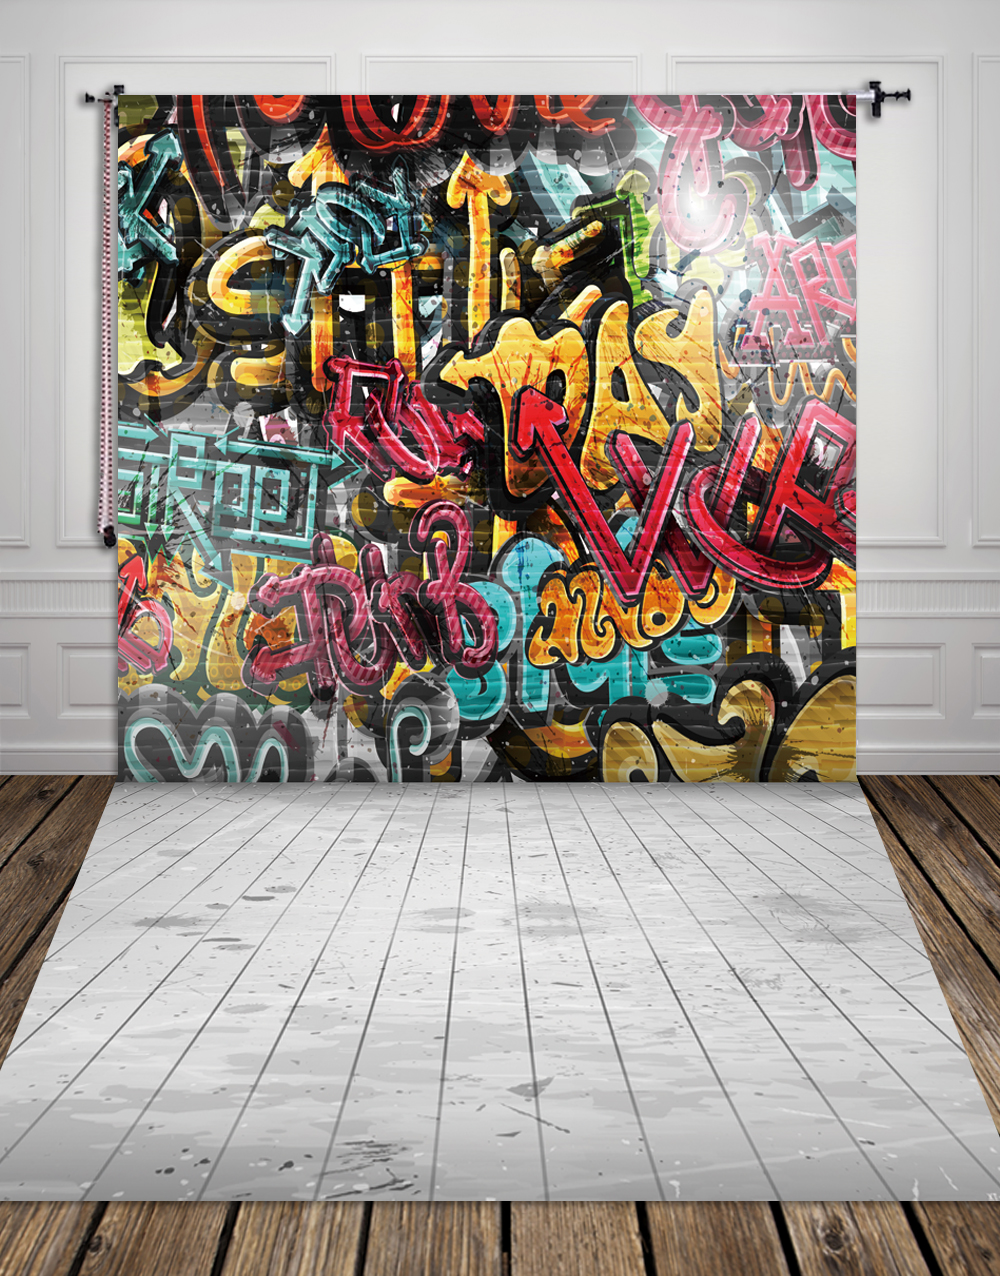 HUAYI fabric cloth photo studio backdrop Wall graffiti photography backdrops cool rock photography studio backgrounds XT